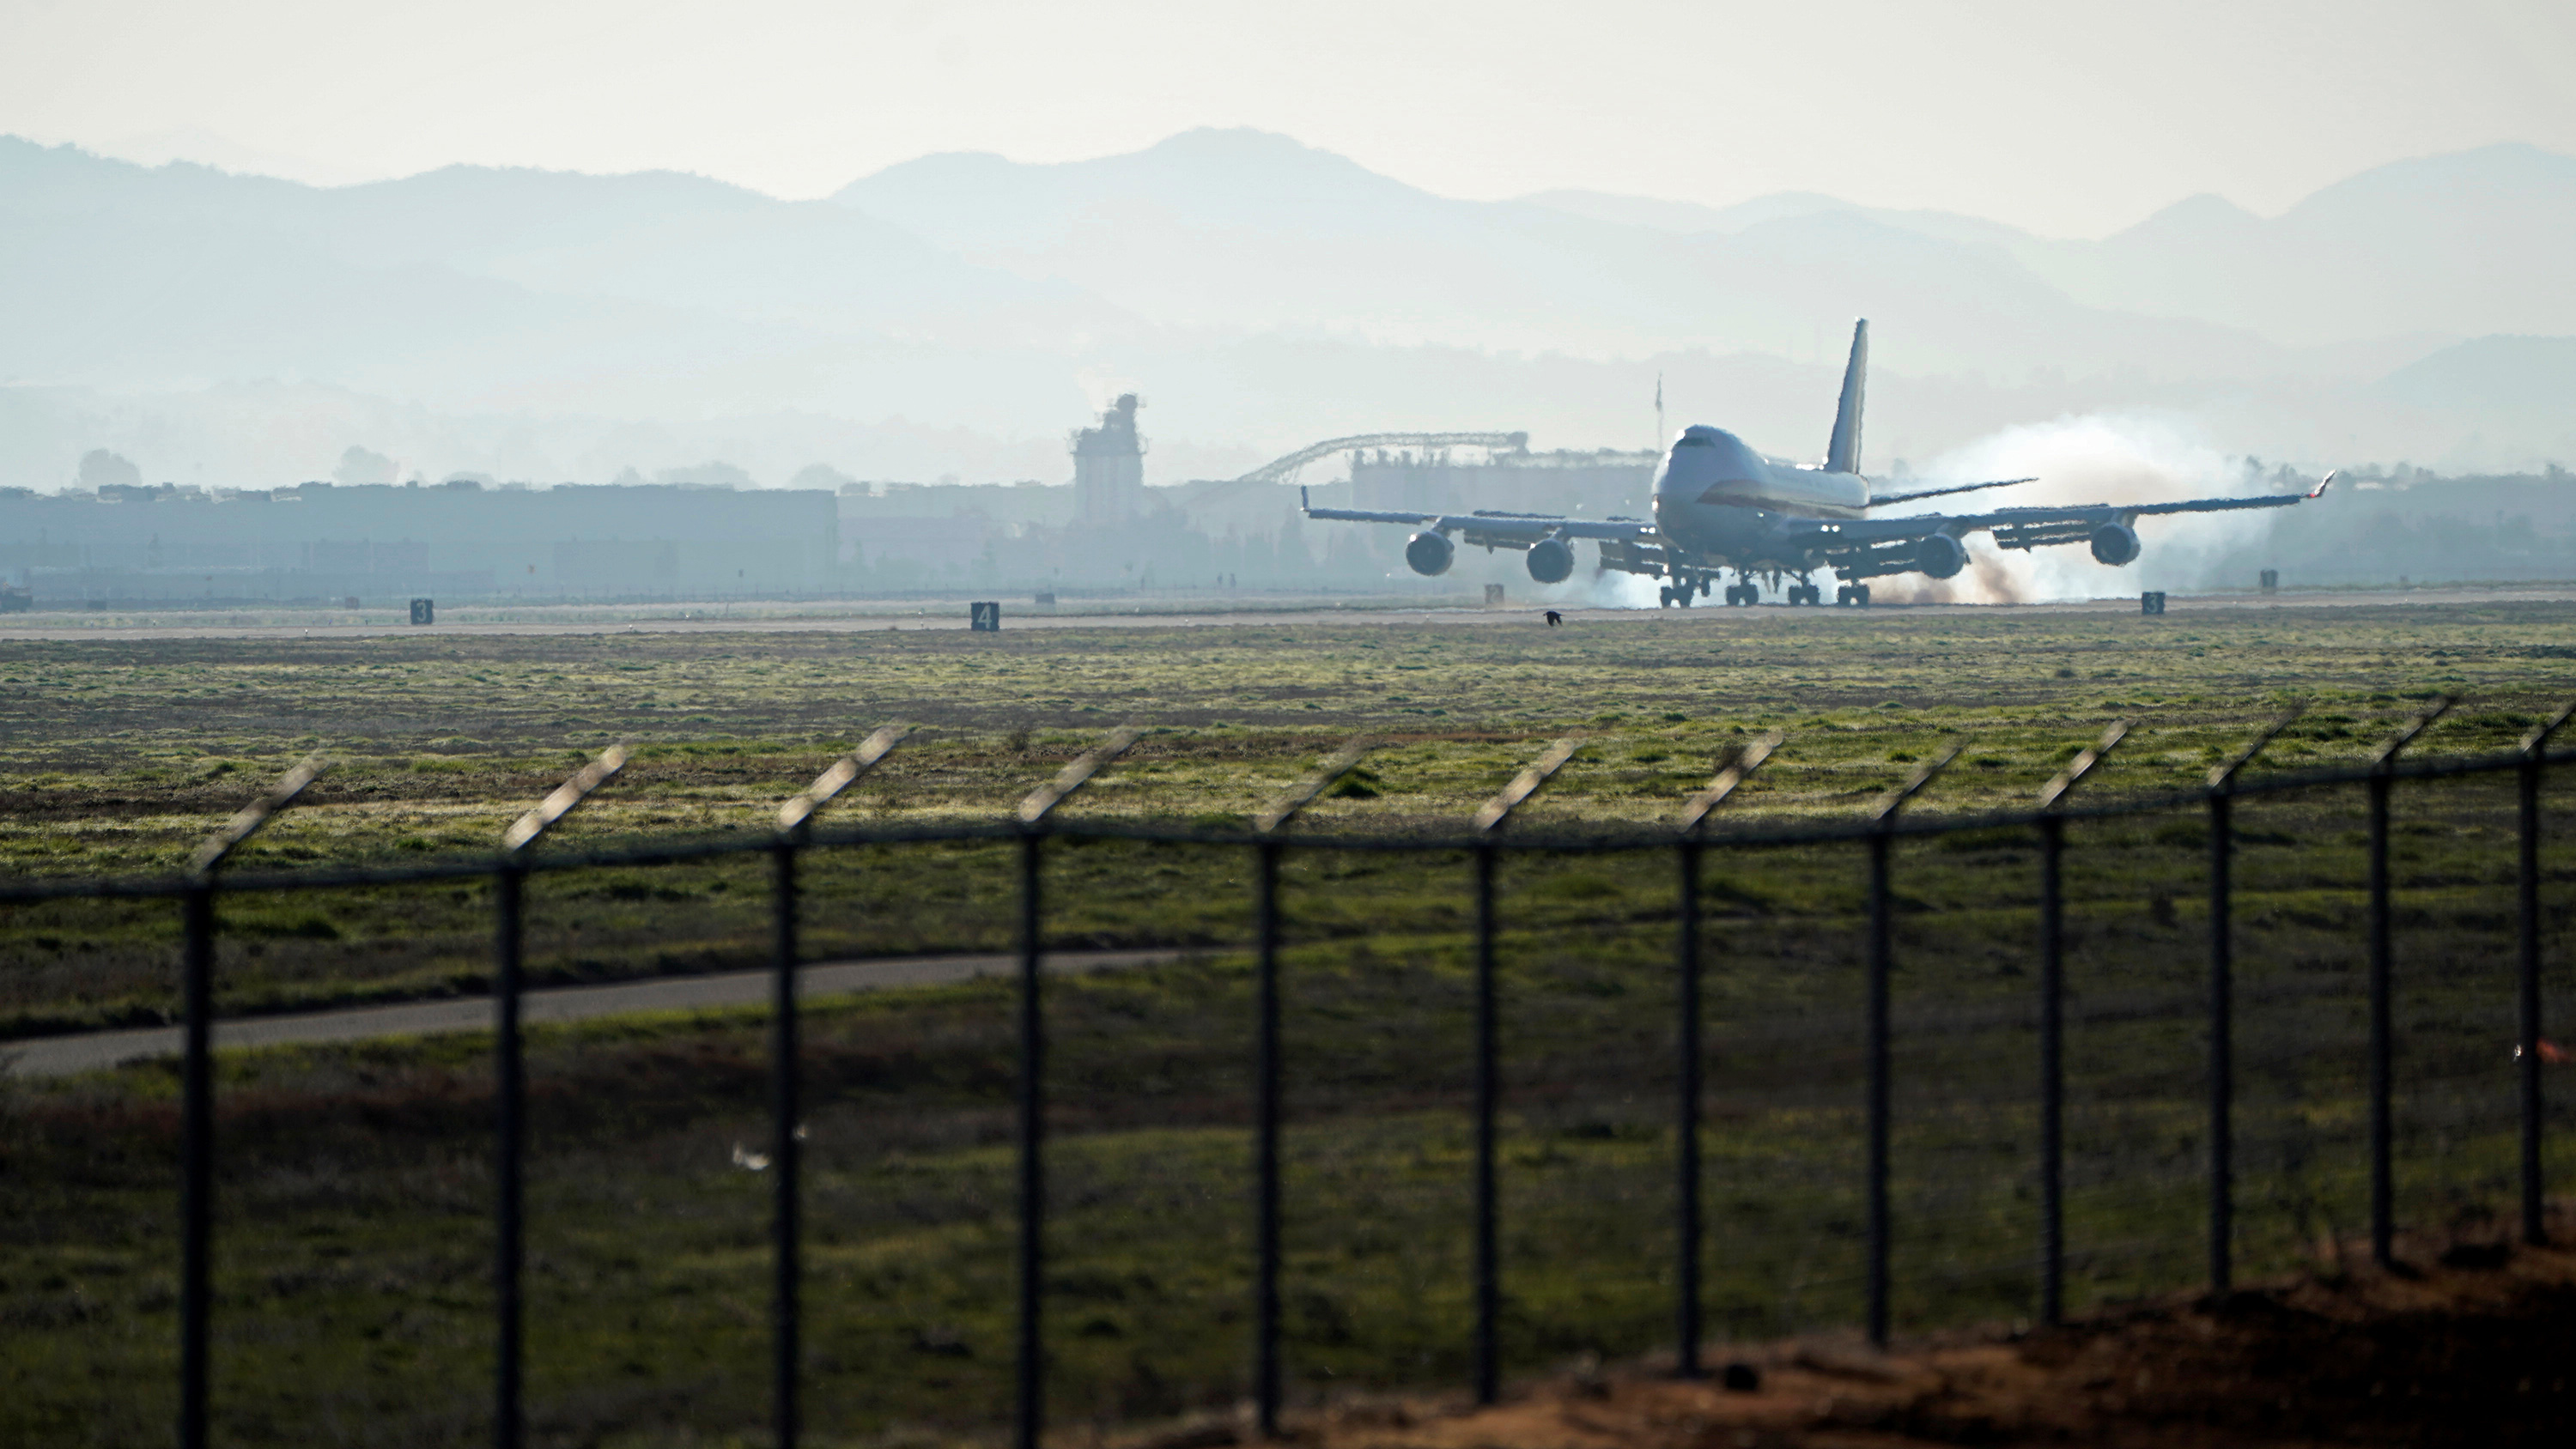 Photo shows a plane touching down in the distance from behind a security fence.